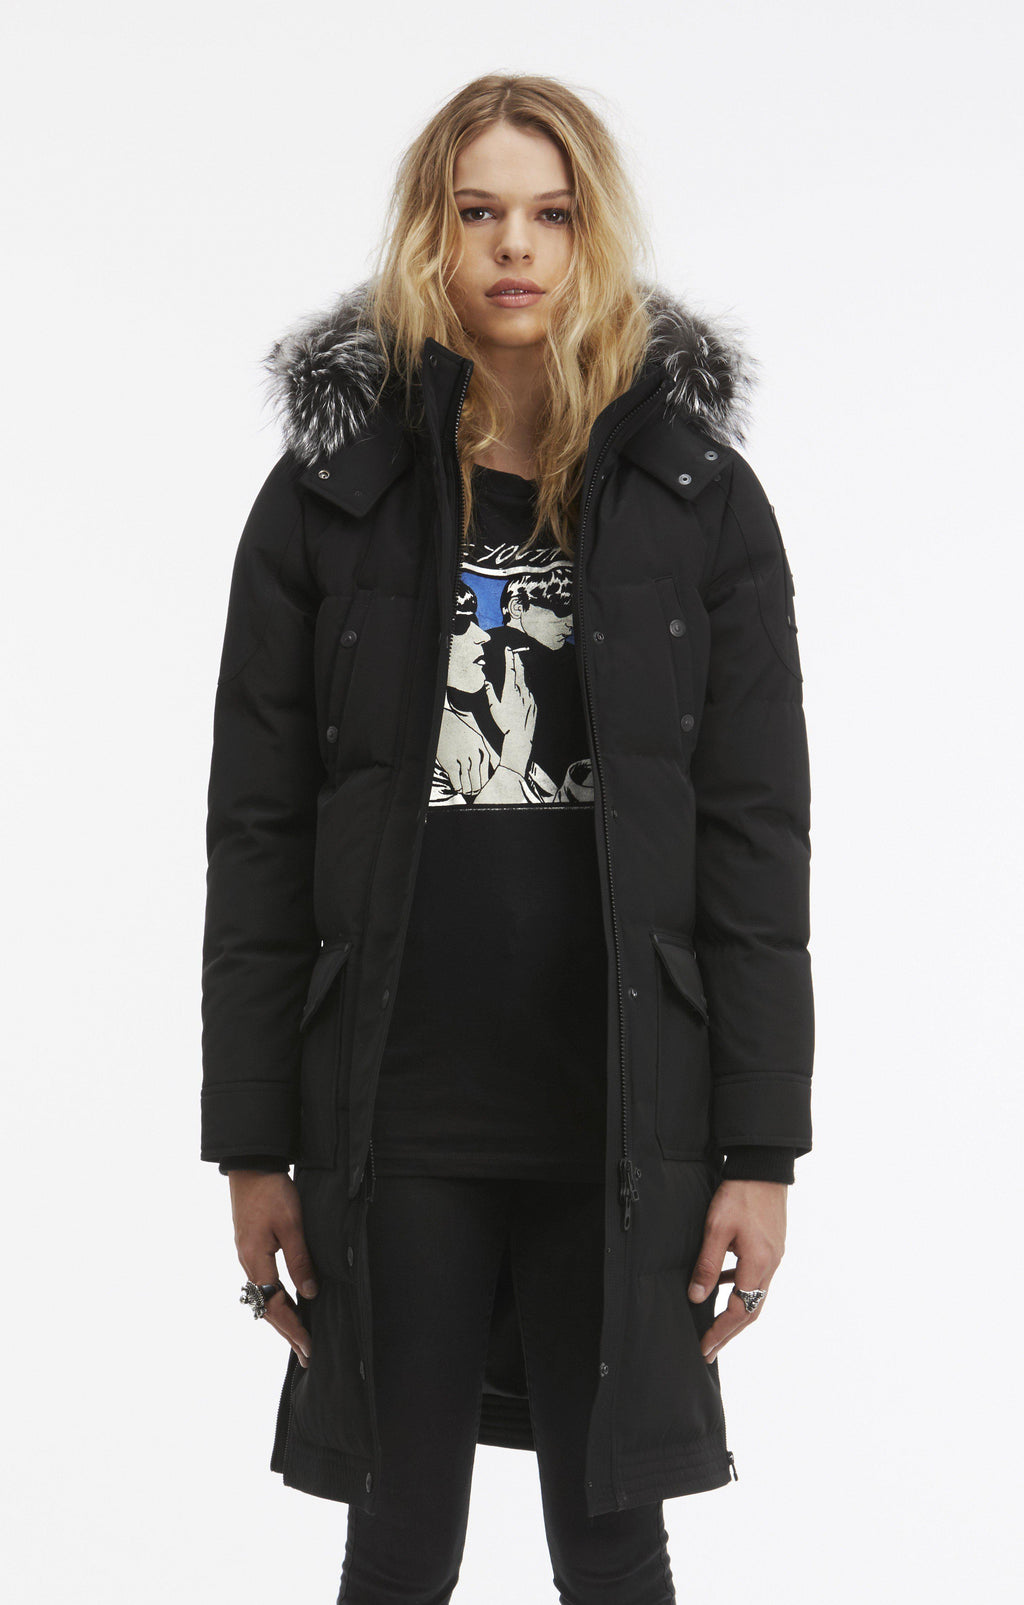 Moose Knuckles Alberta Parka Jacket-Jackets-Classic fashion CF13-S-Black-Classic fashion CF13